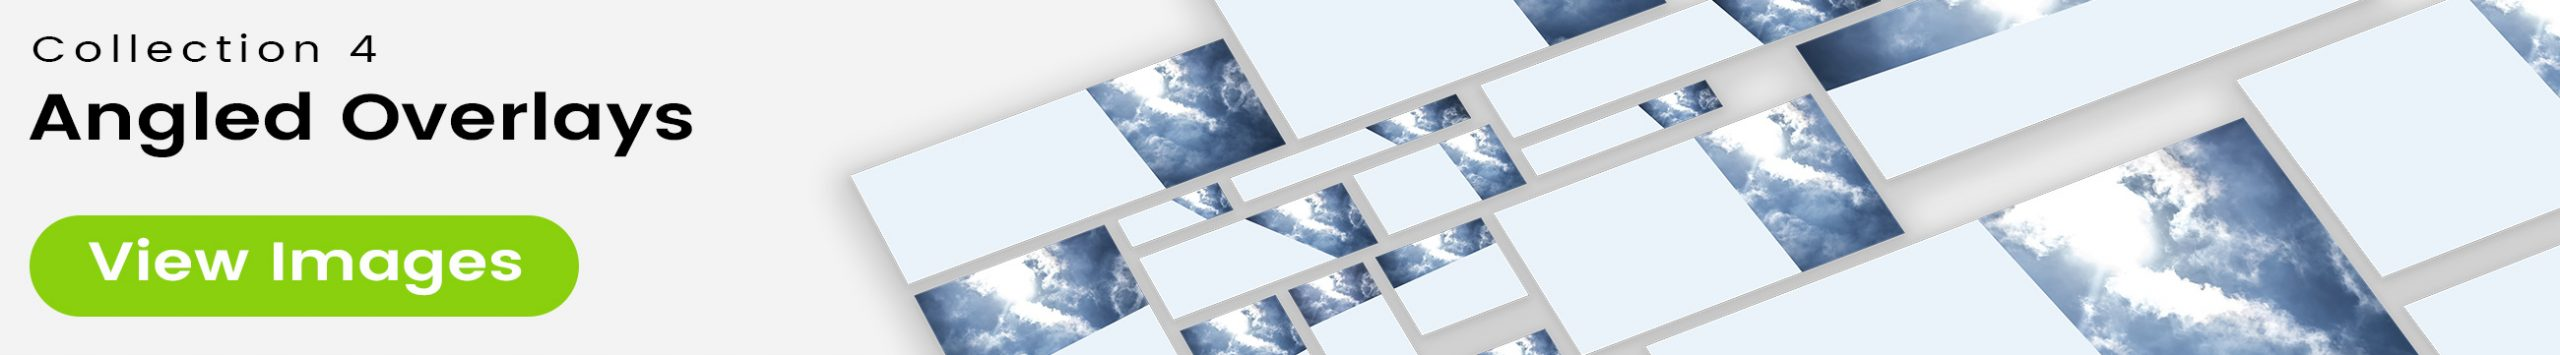 See 25 bonus images included with clouds stock image 9462. Collection 4 of 4 features an angled overlay design customized with a color that complements each photo.